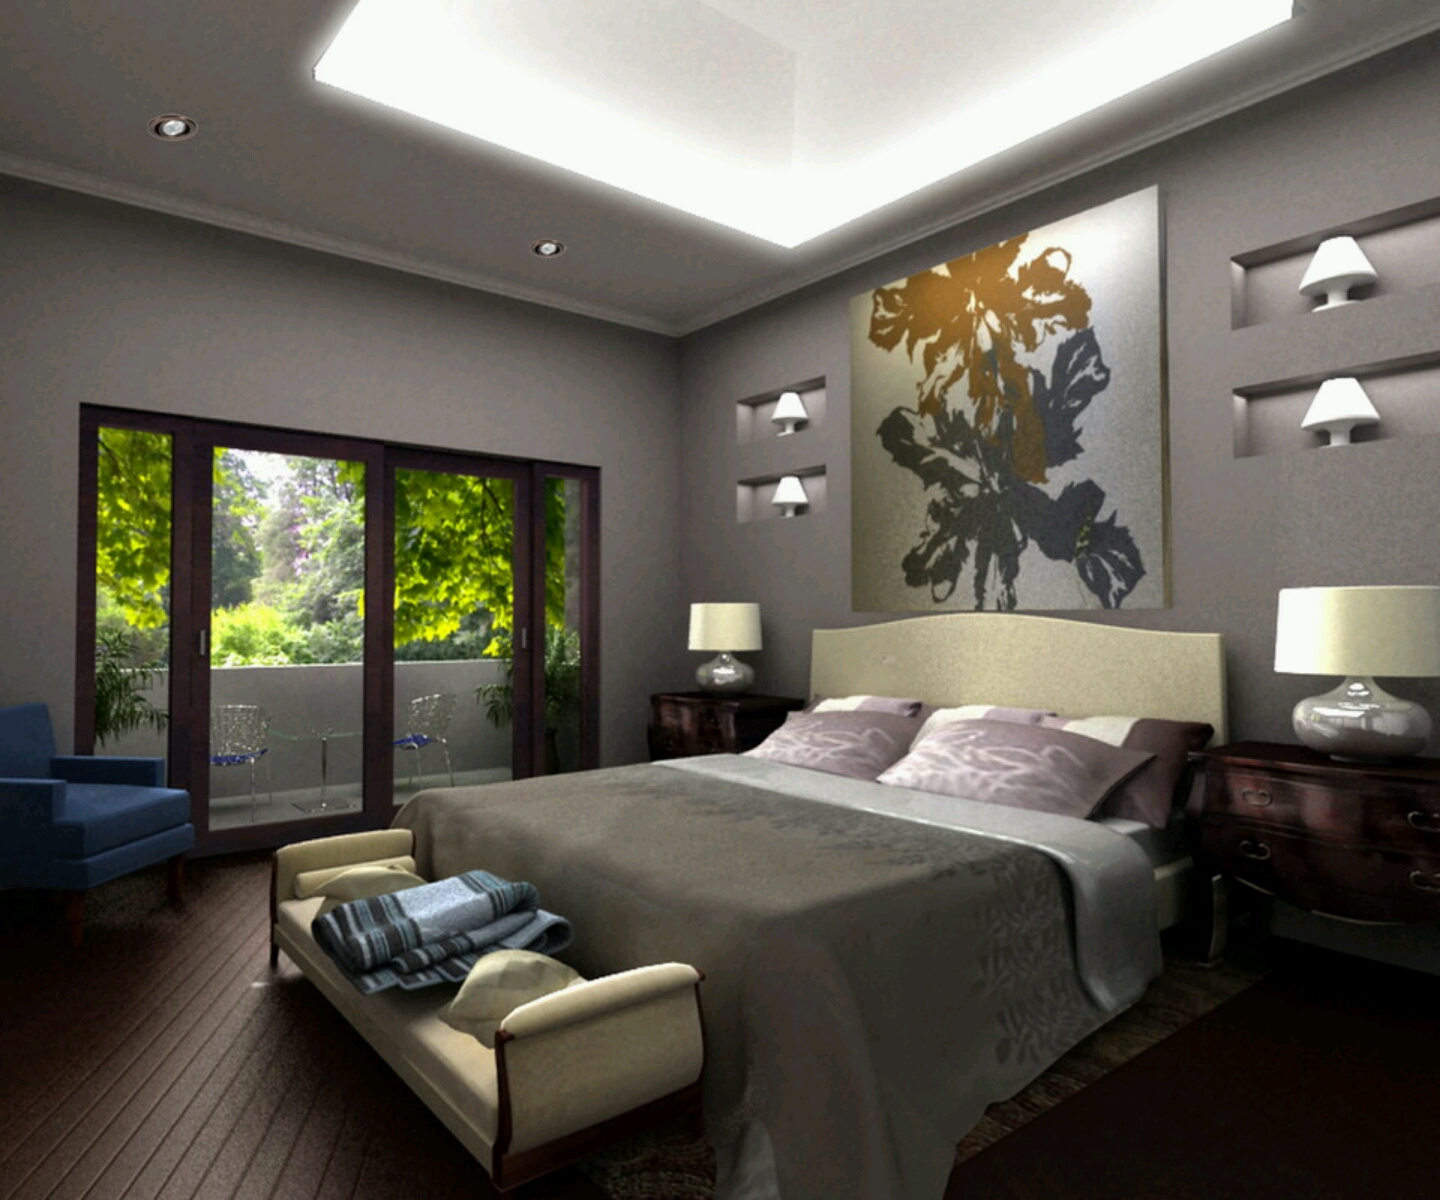 Modern bed designs beautiful bedrooms designs ideas vintage romantic home - Bedroom pictures ideas ...